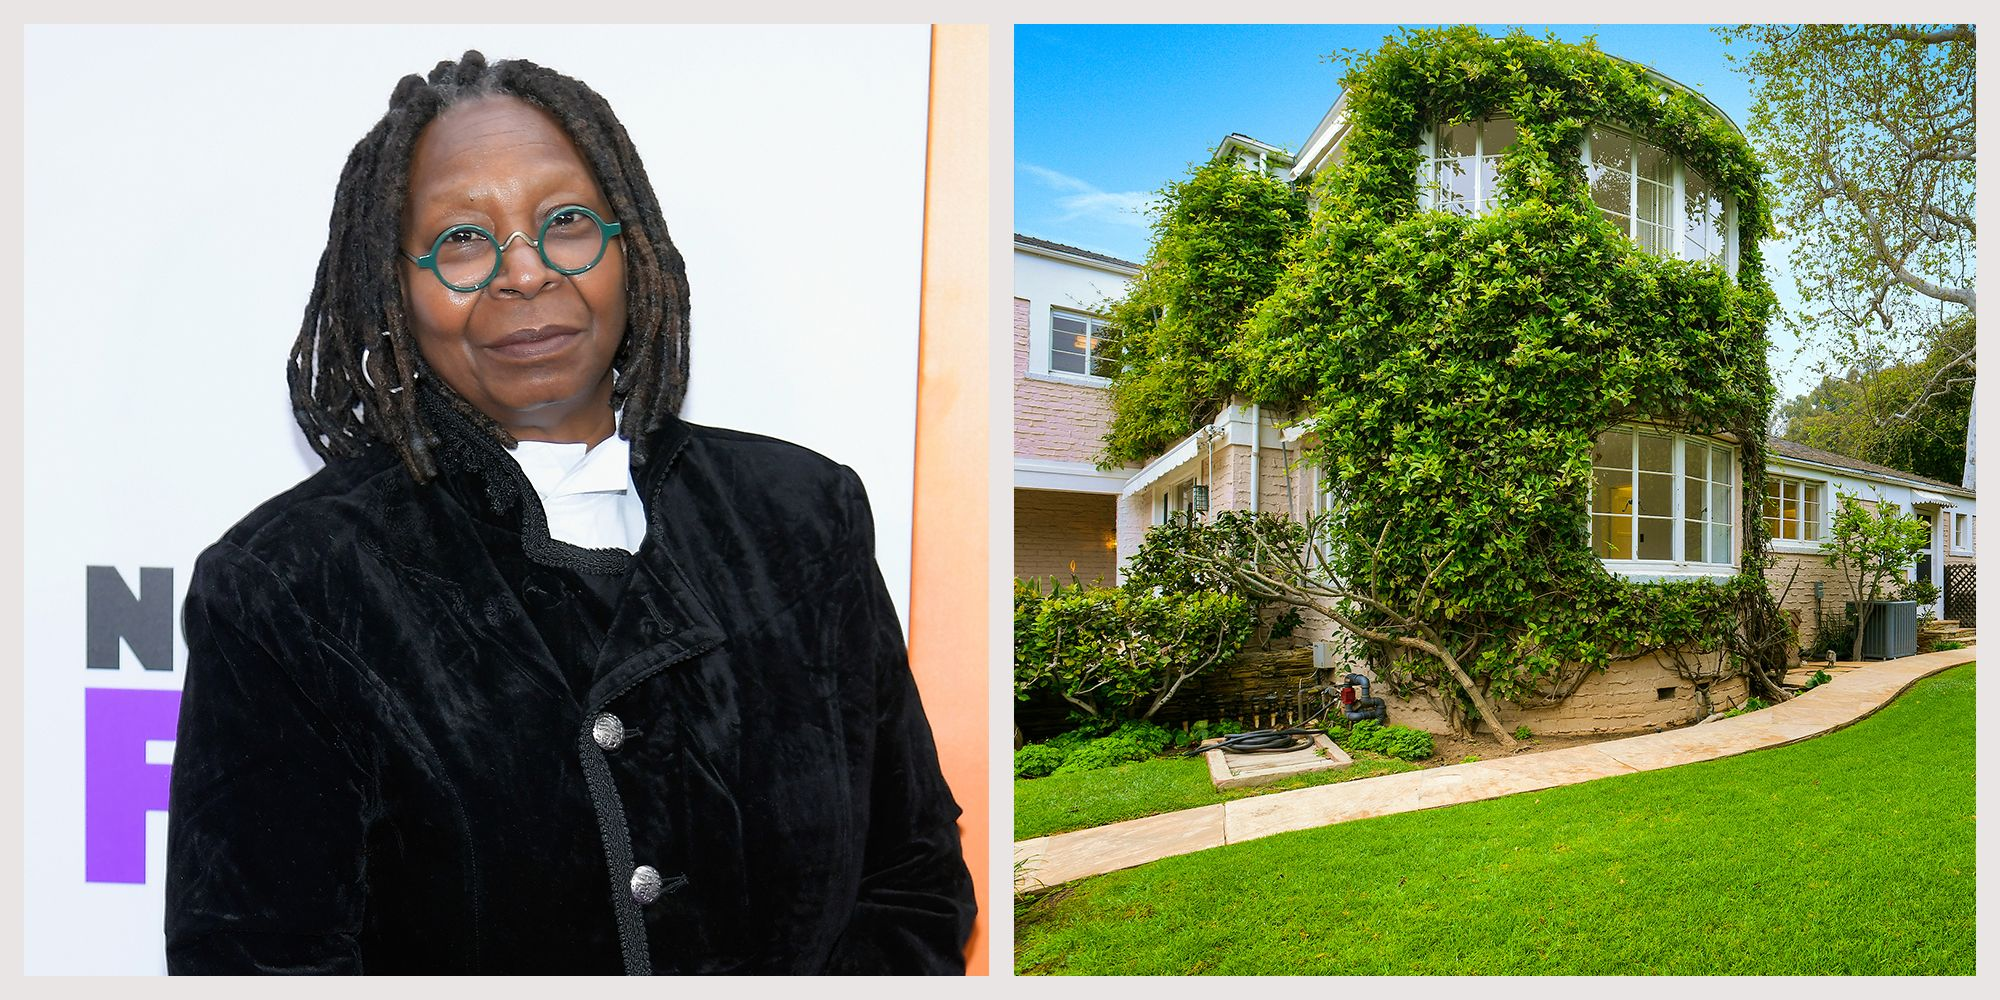 Whoopi Goldberg's Longtime L.A. Home Is For Sale For $9.6 Million